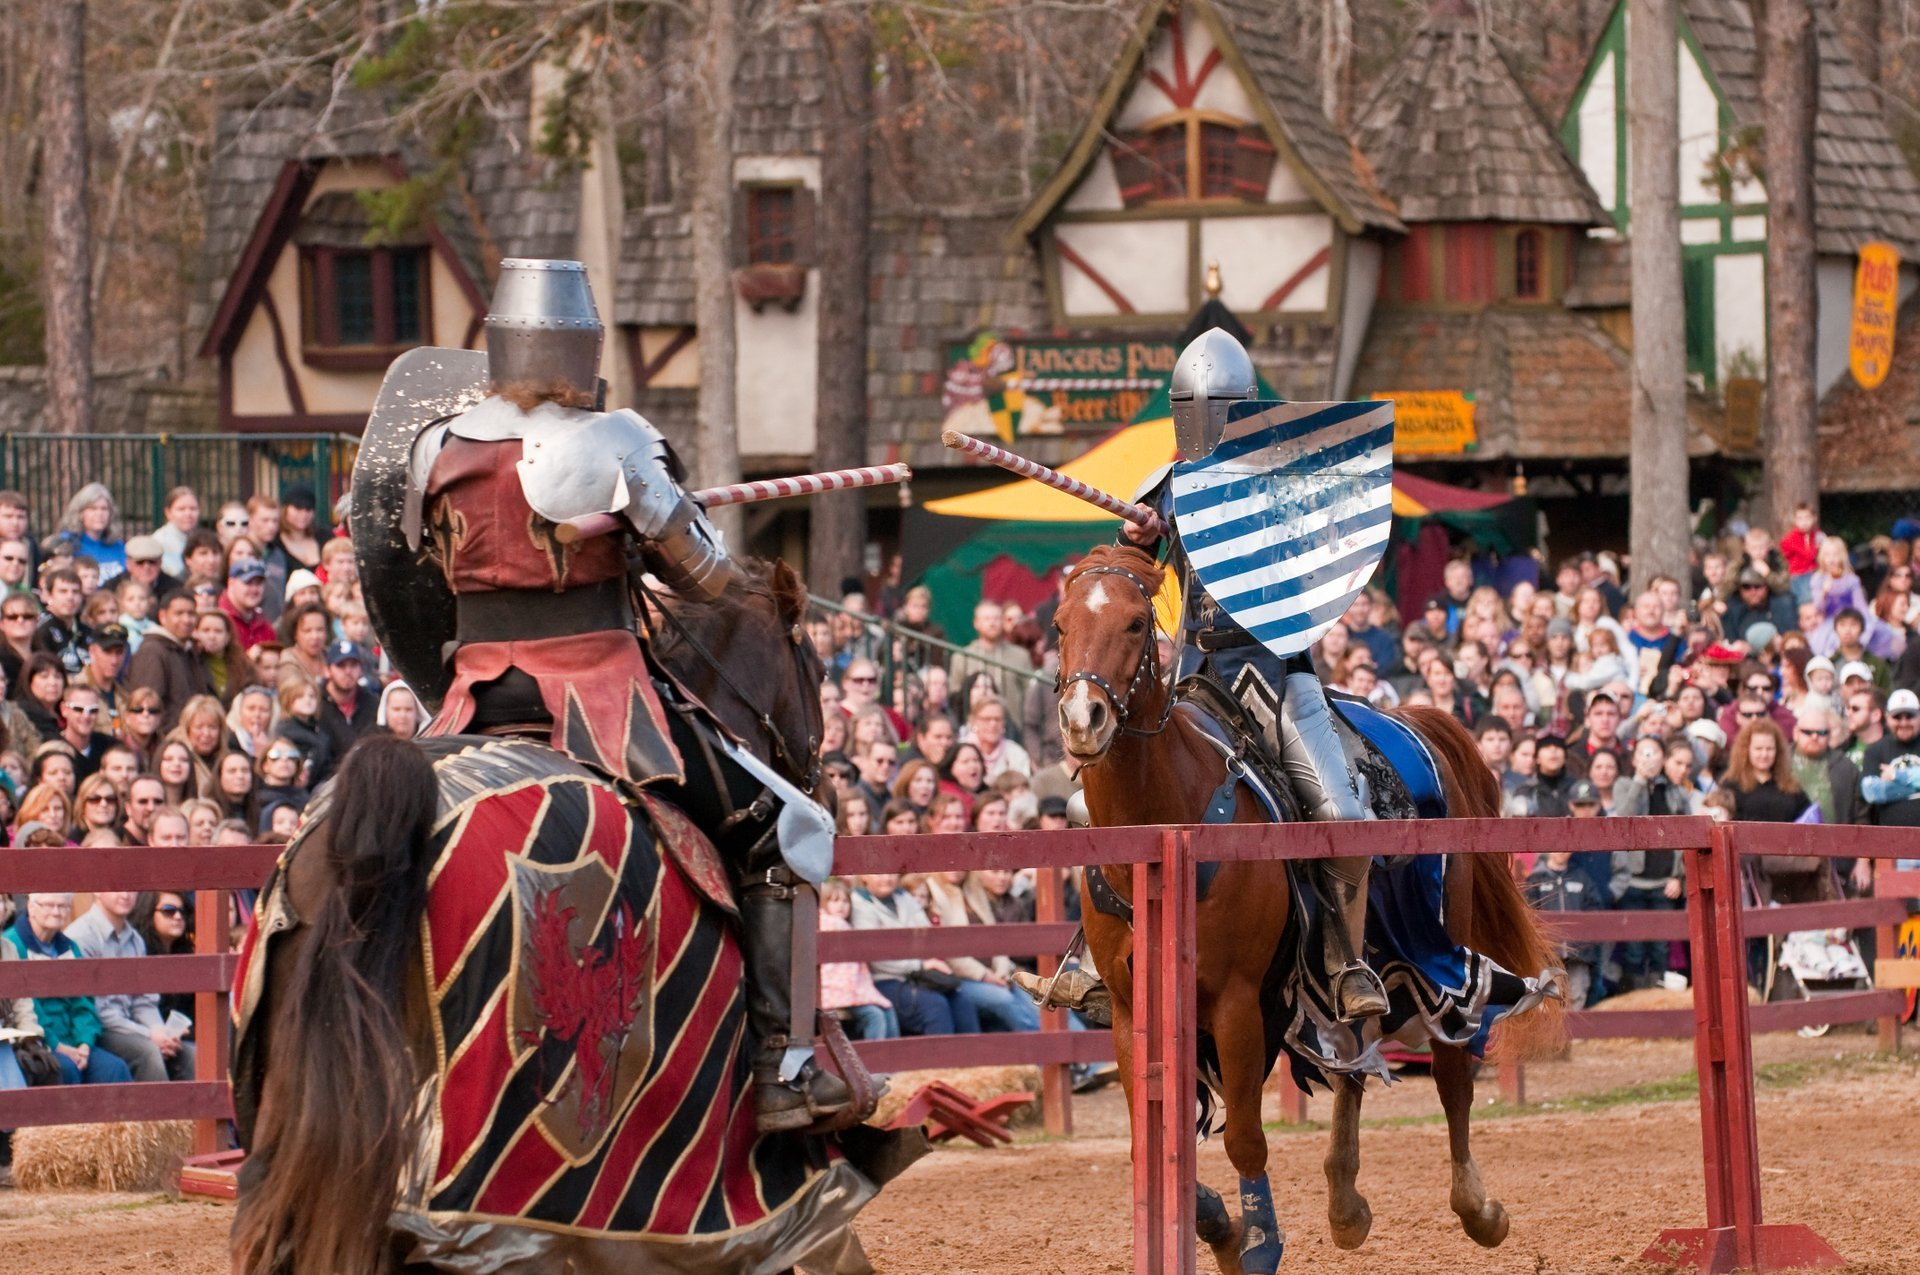 Jousting knights on horseback 2020